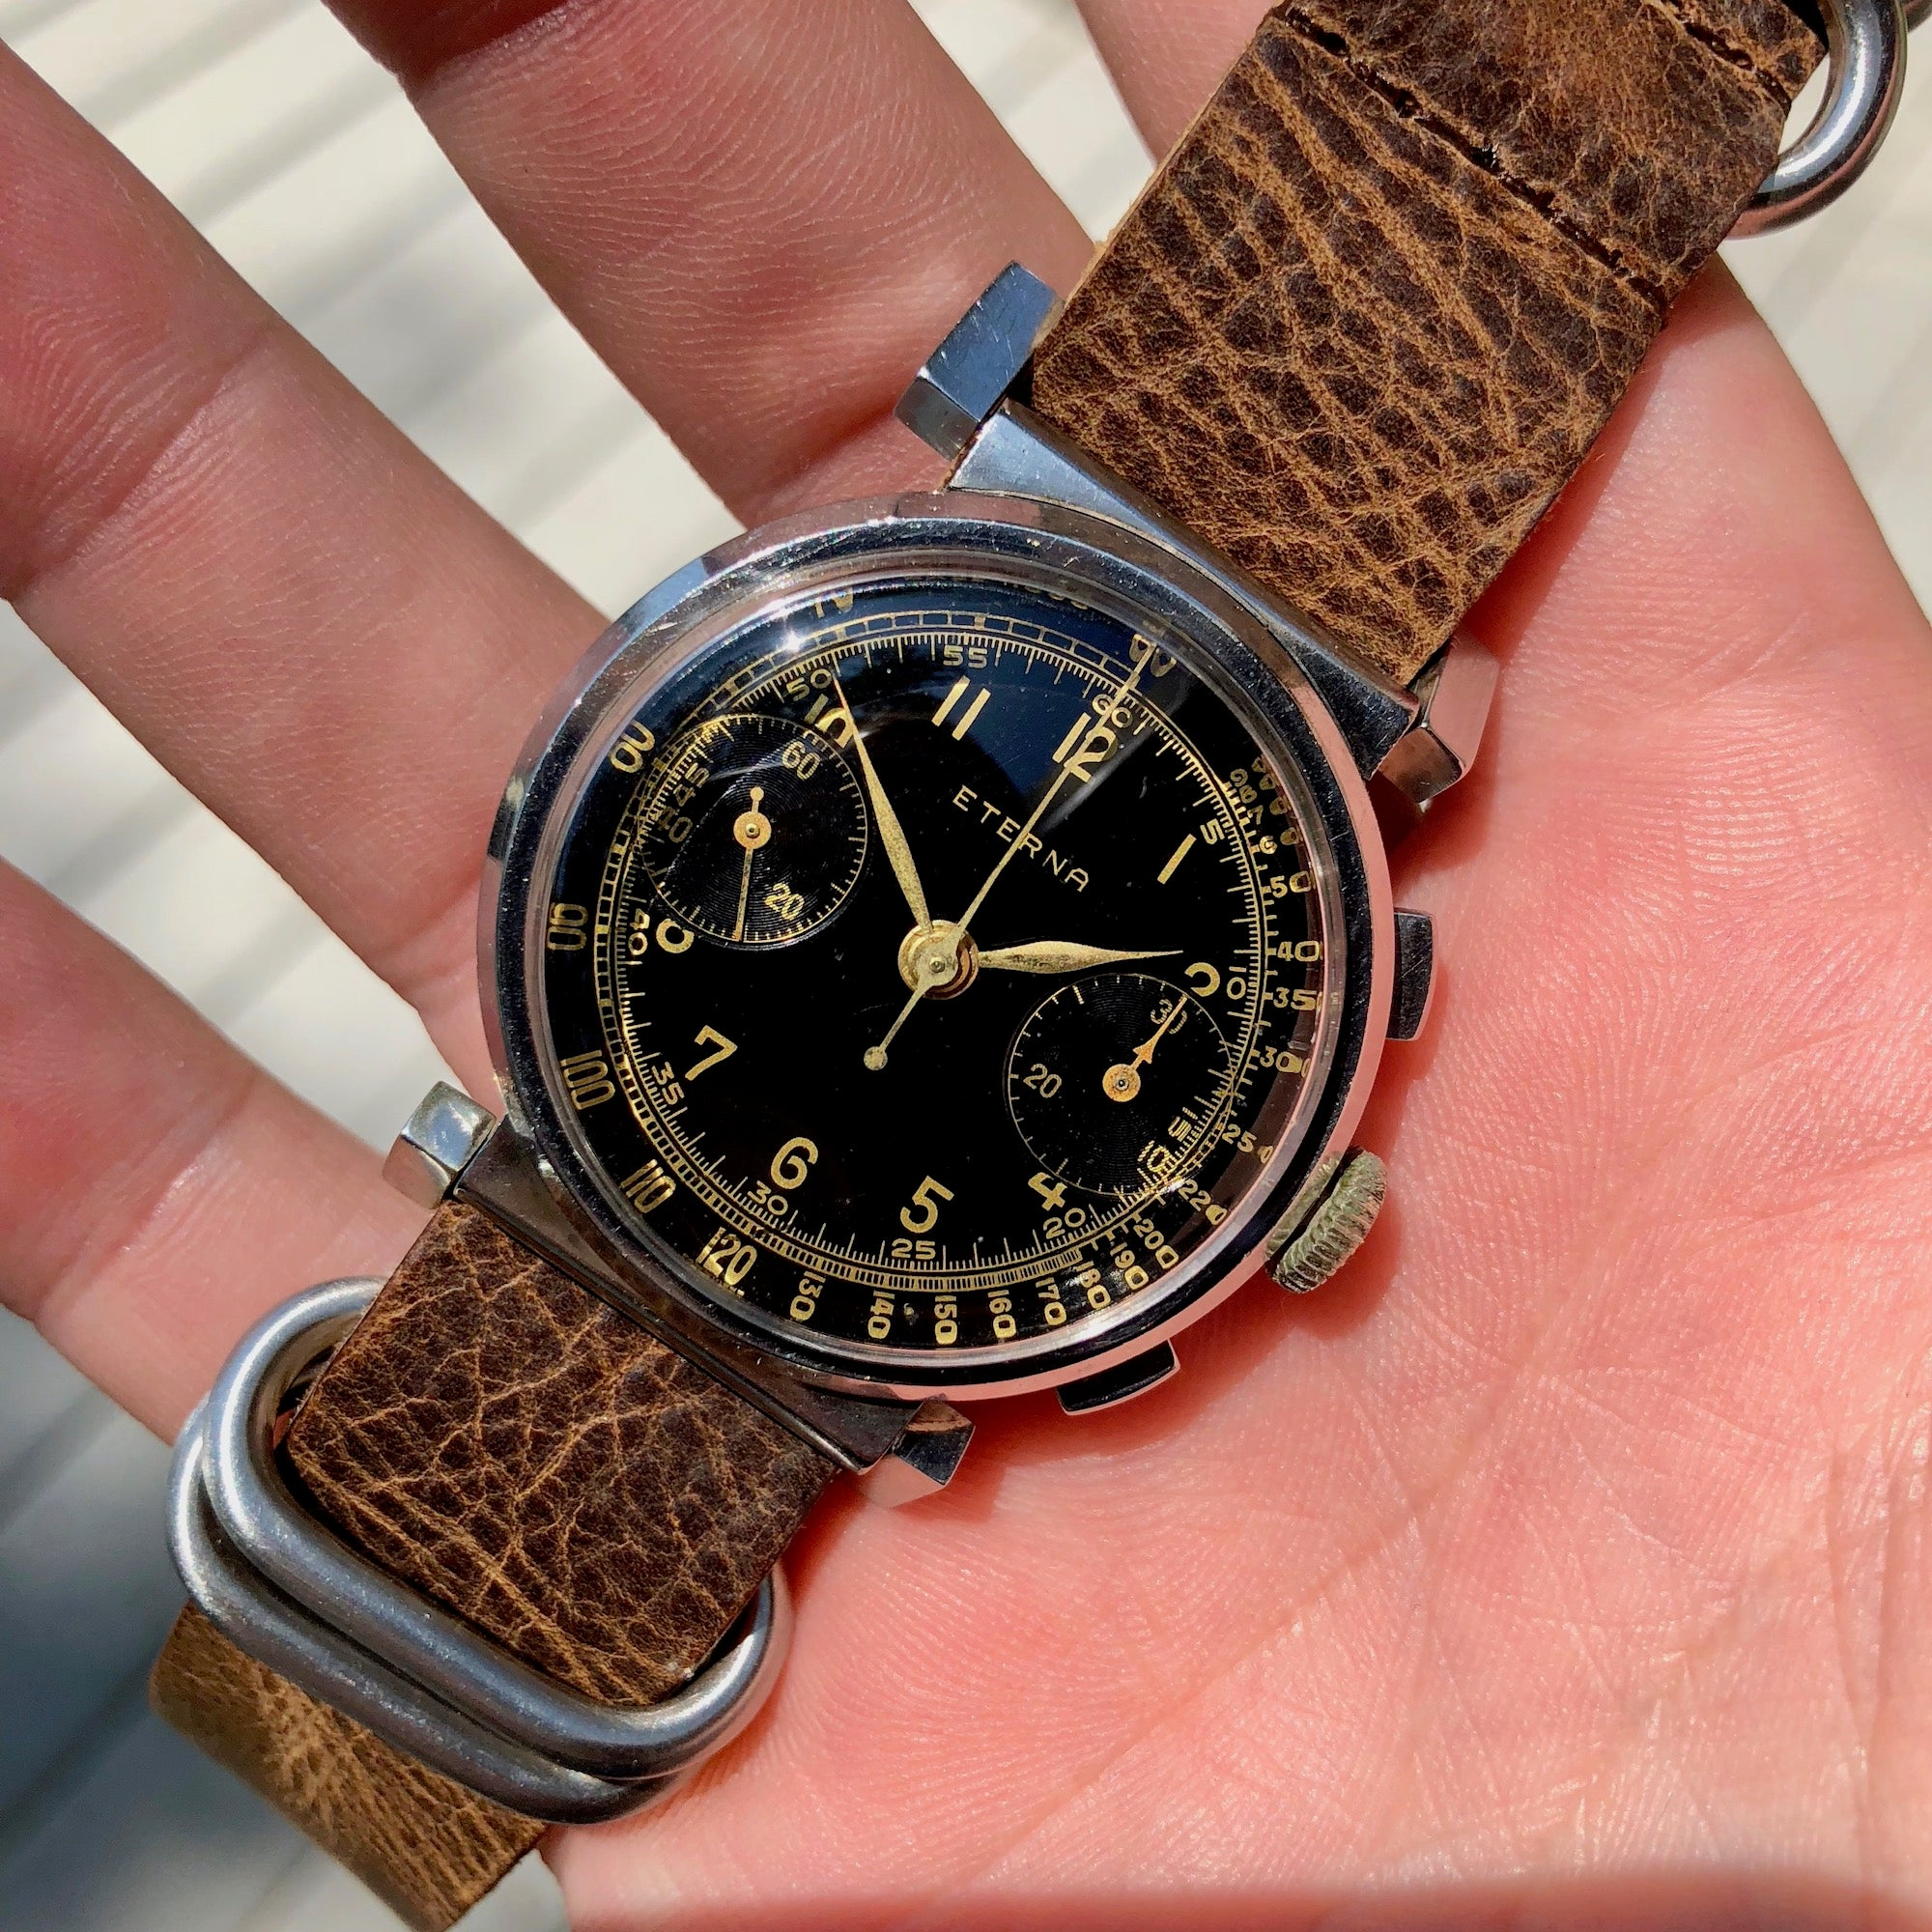 Vintage Eterna Stainless Steel Gilt Chronograph Flexible Lugs Manual Wind 35mm Wristwatch - Hashtag Watch Company